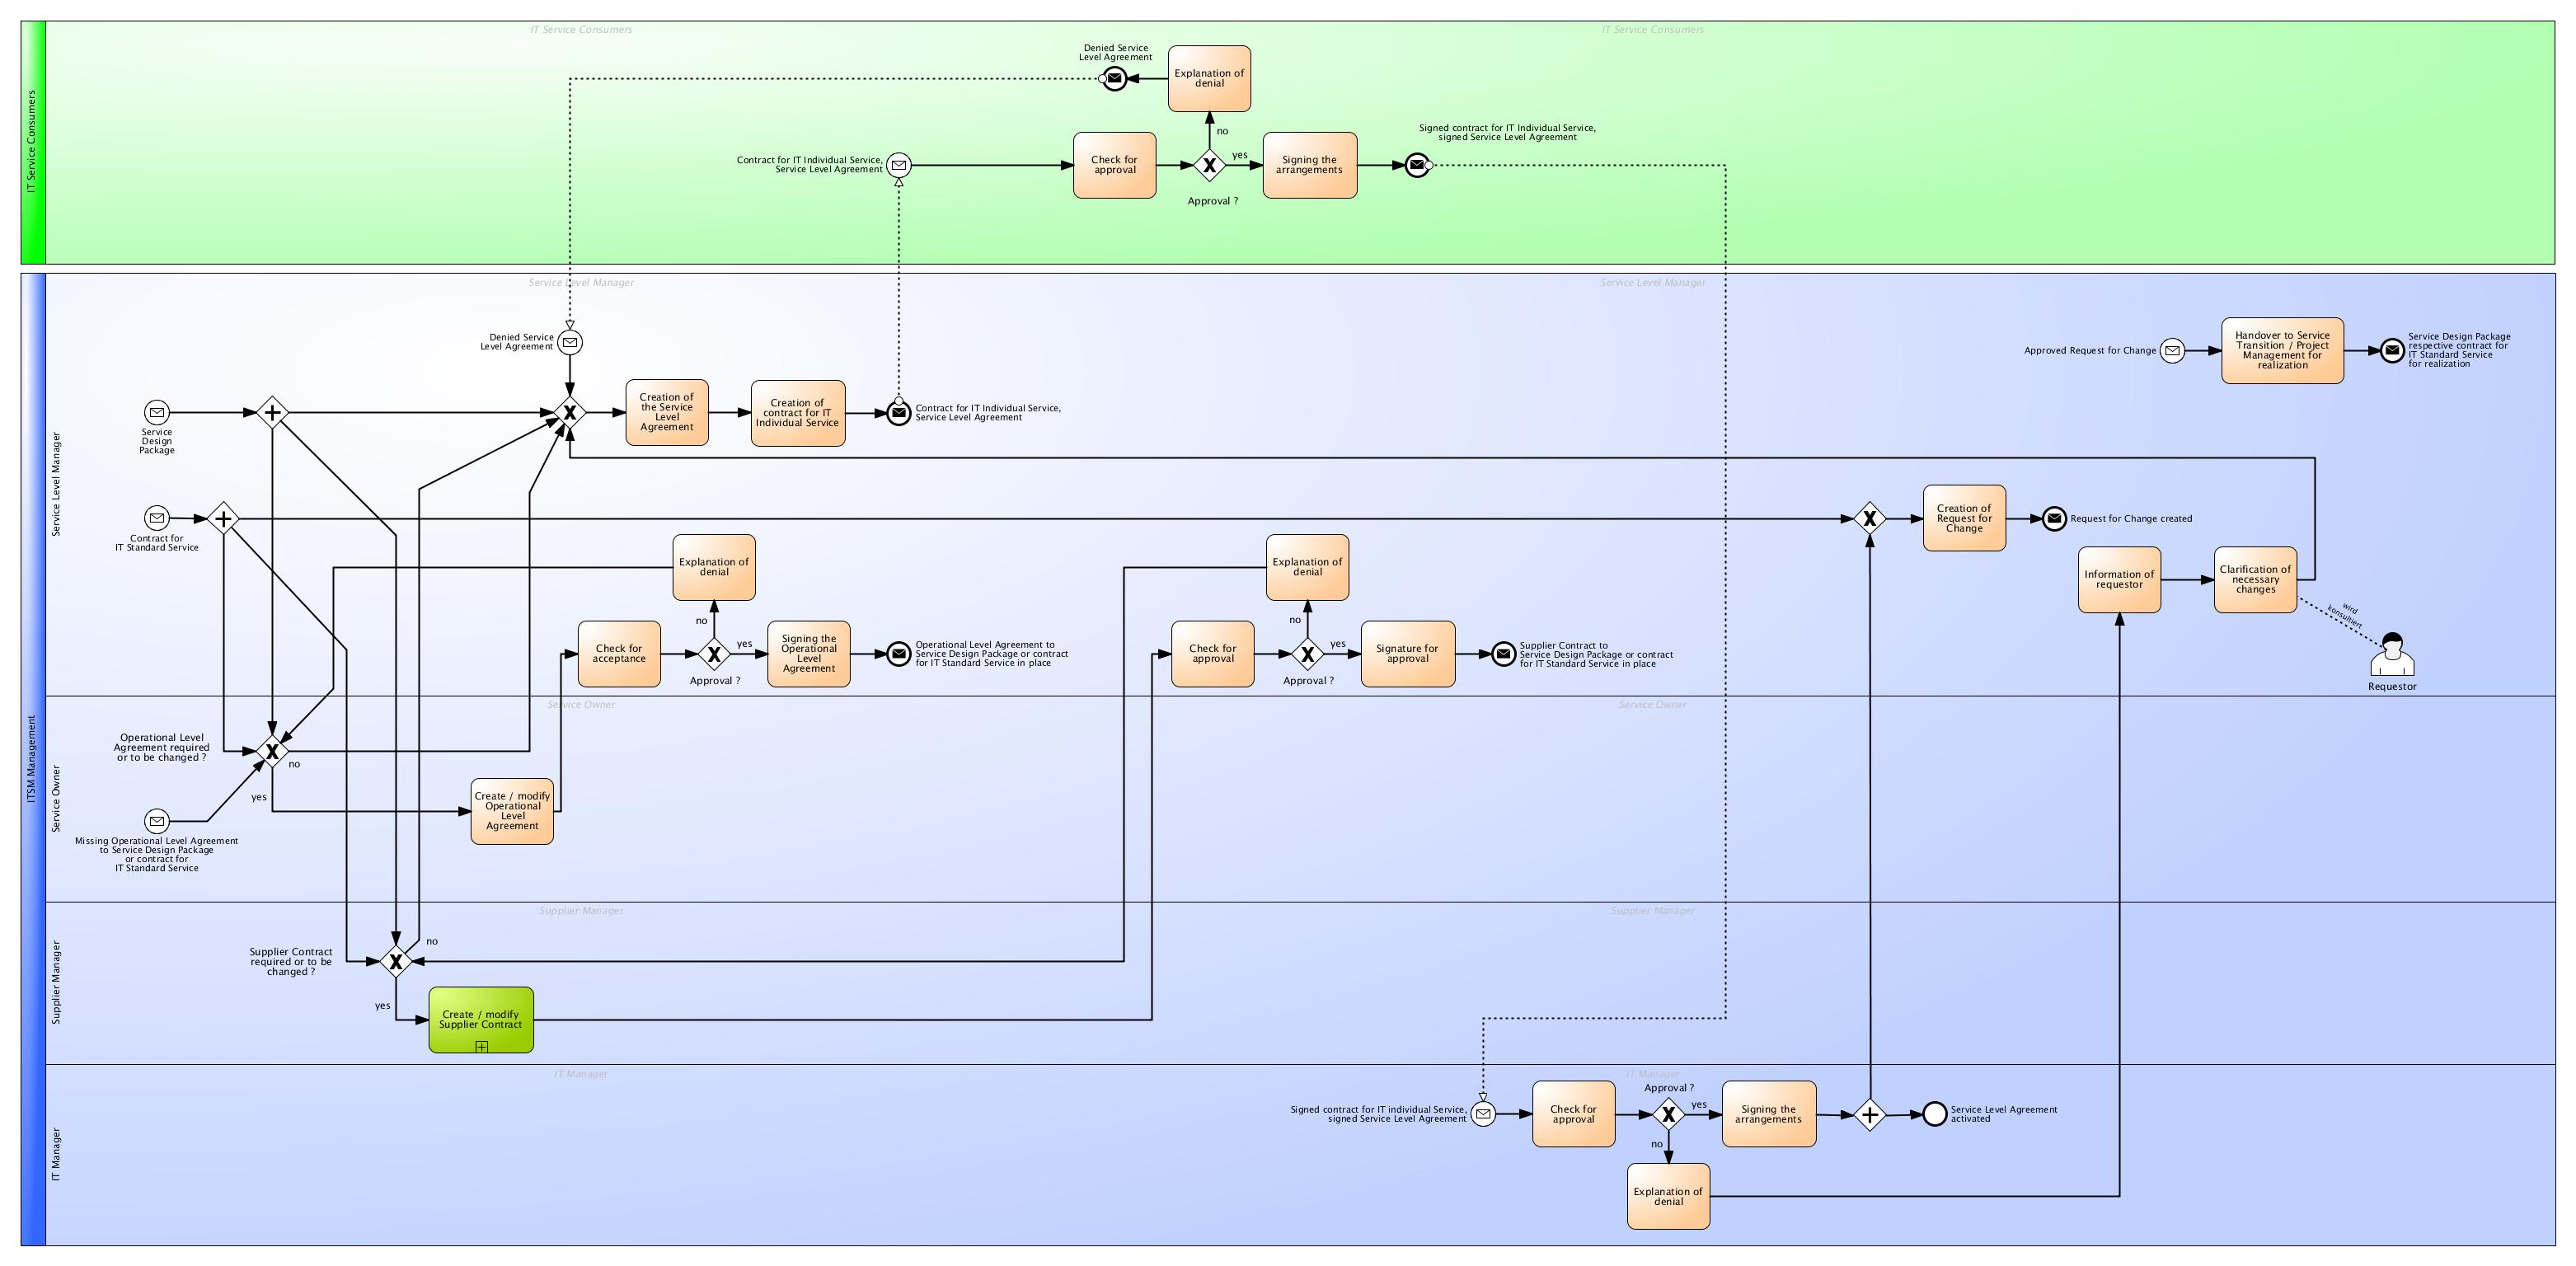 Excerpt Process Documentation Of Service Design According To Itil